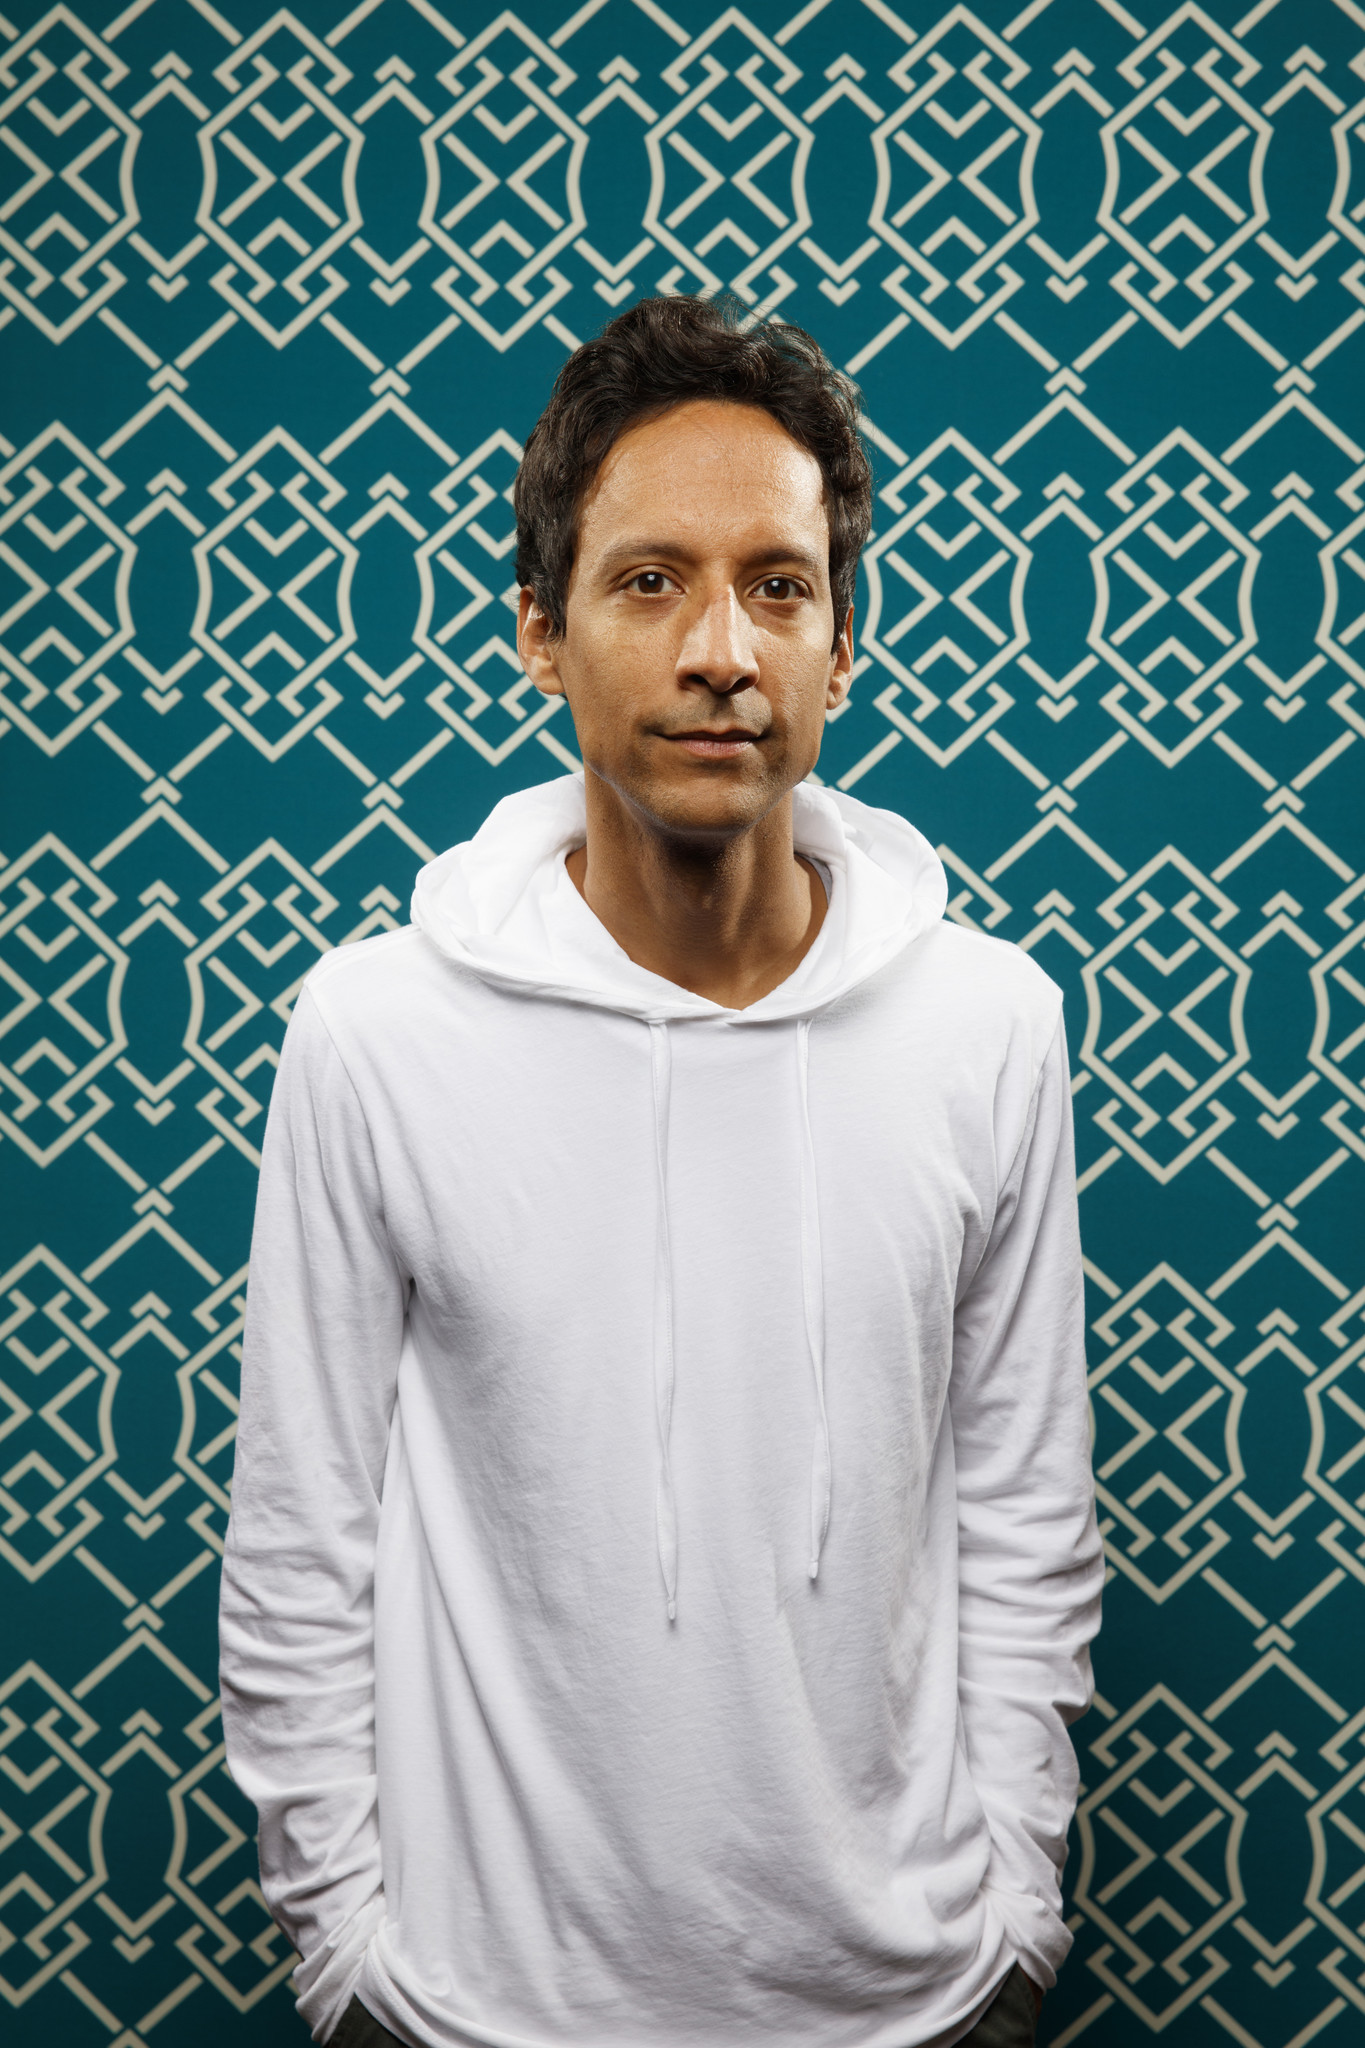 """SAN DIEGO, CALIF. -- JULY 20, 2018-- Danny Pudi from the television series """"Duck Tales,"""" photographe"""